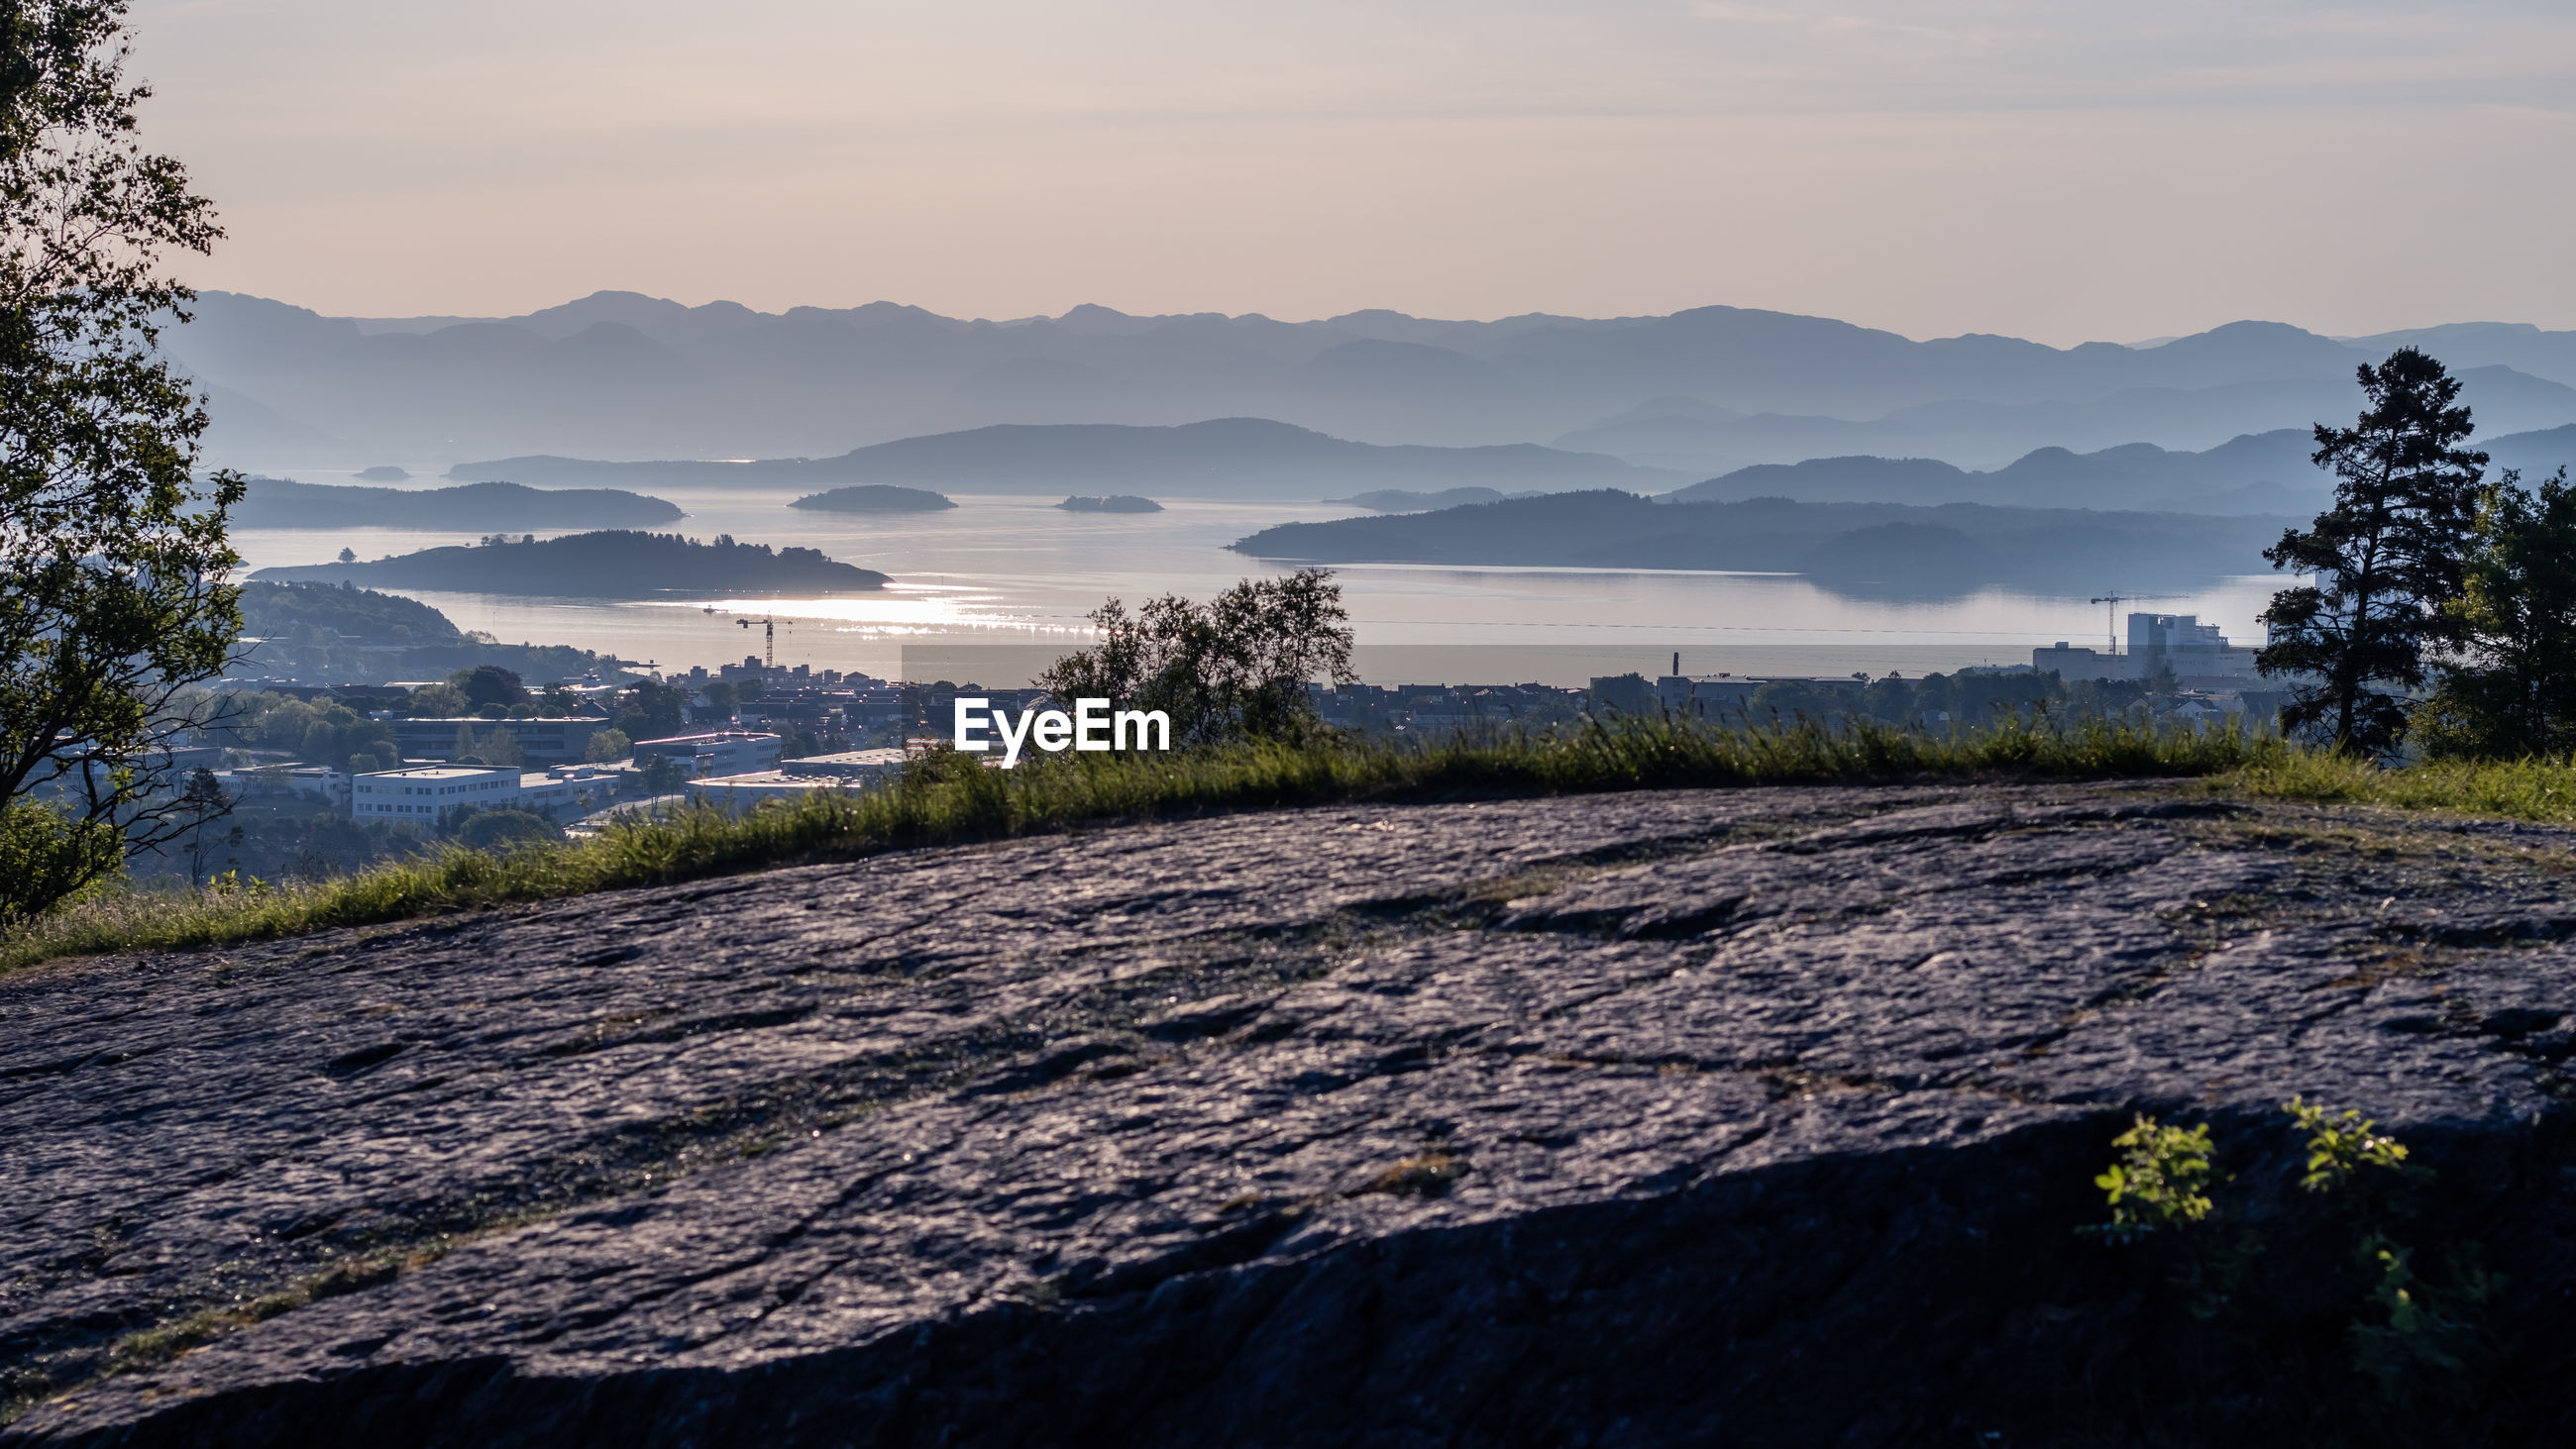 SCENIC VIEW OF LANDSCAPE AND MOUNTAINS AGAINST SKY DURING SUNSET